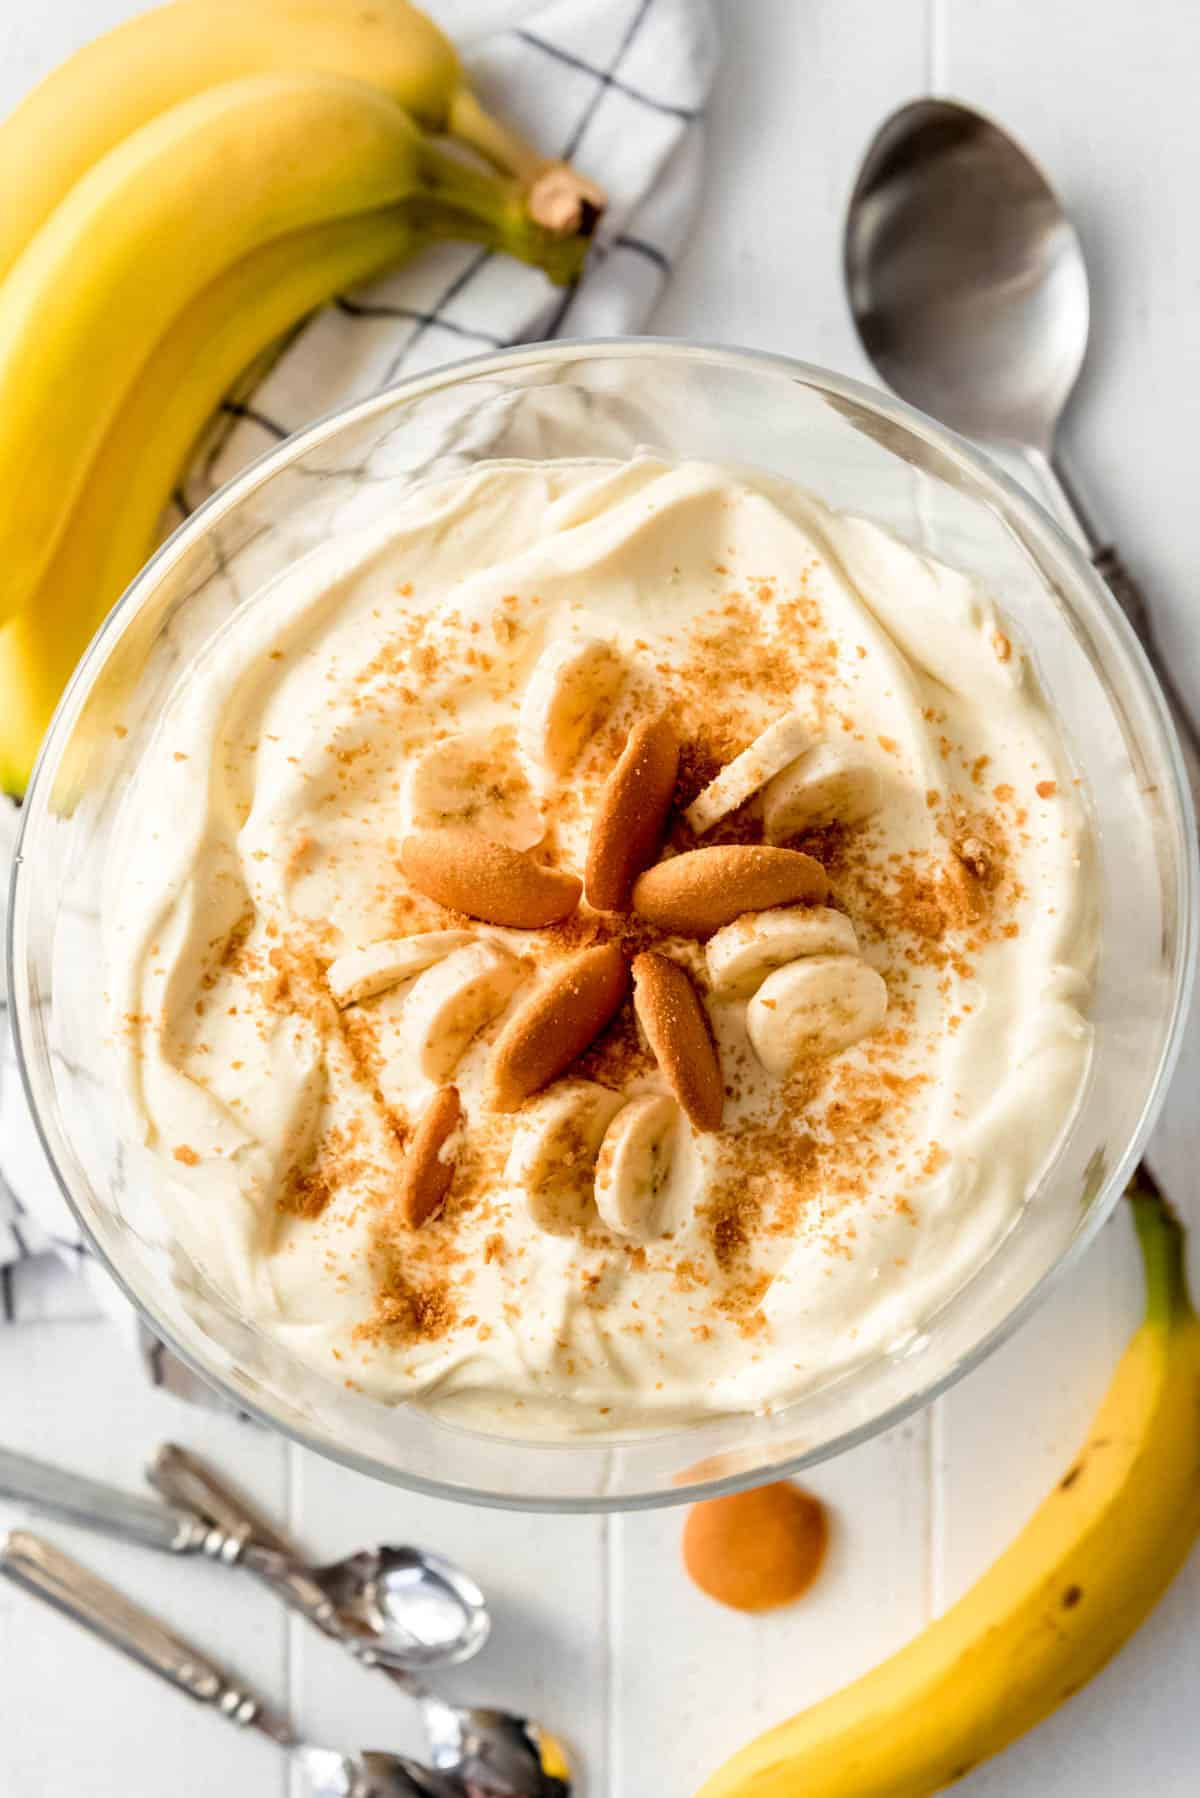 Magnolia Bakery Banana Pudding Trifle on white counter top with whole bananas and a spoon